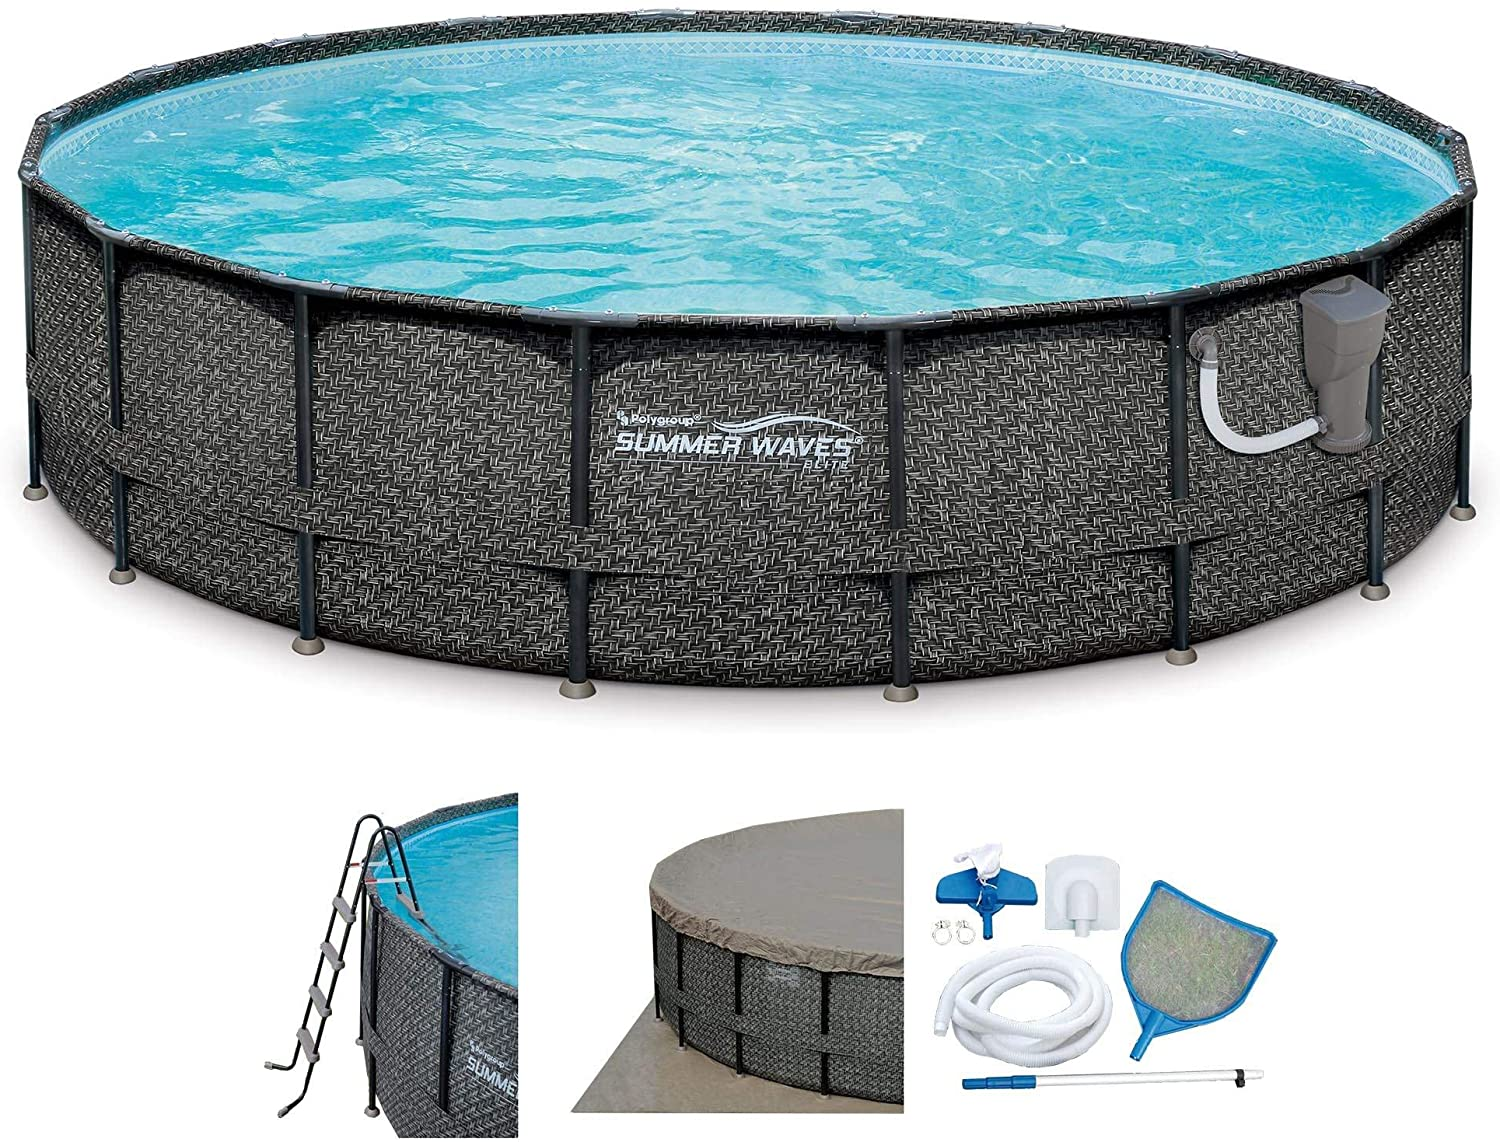 Summer Waves Elite P4A02048B 20ft x 48in Above Ground Frame Swimming Pool Set